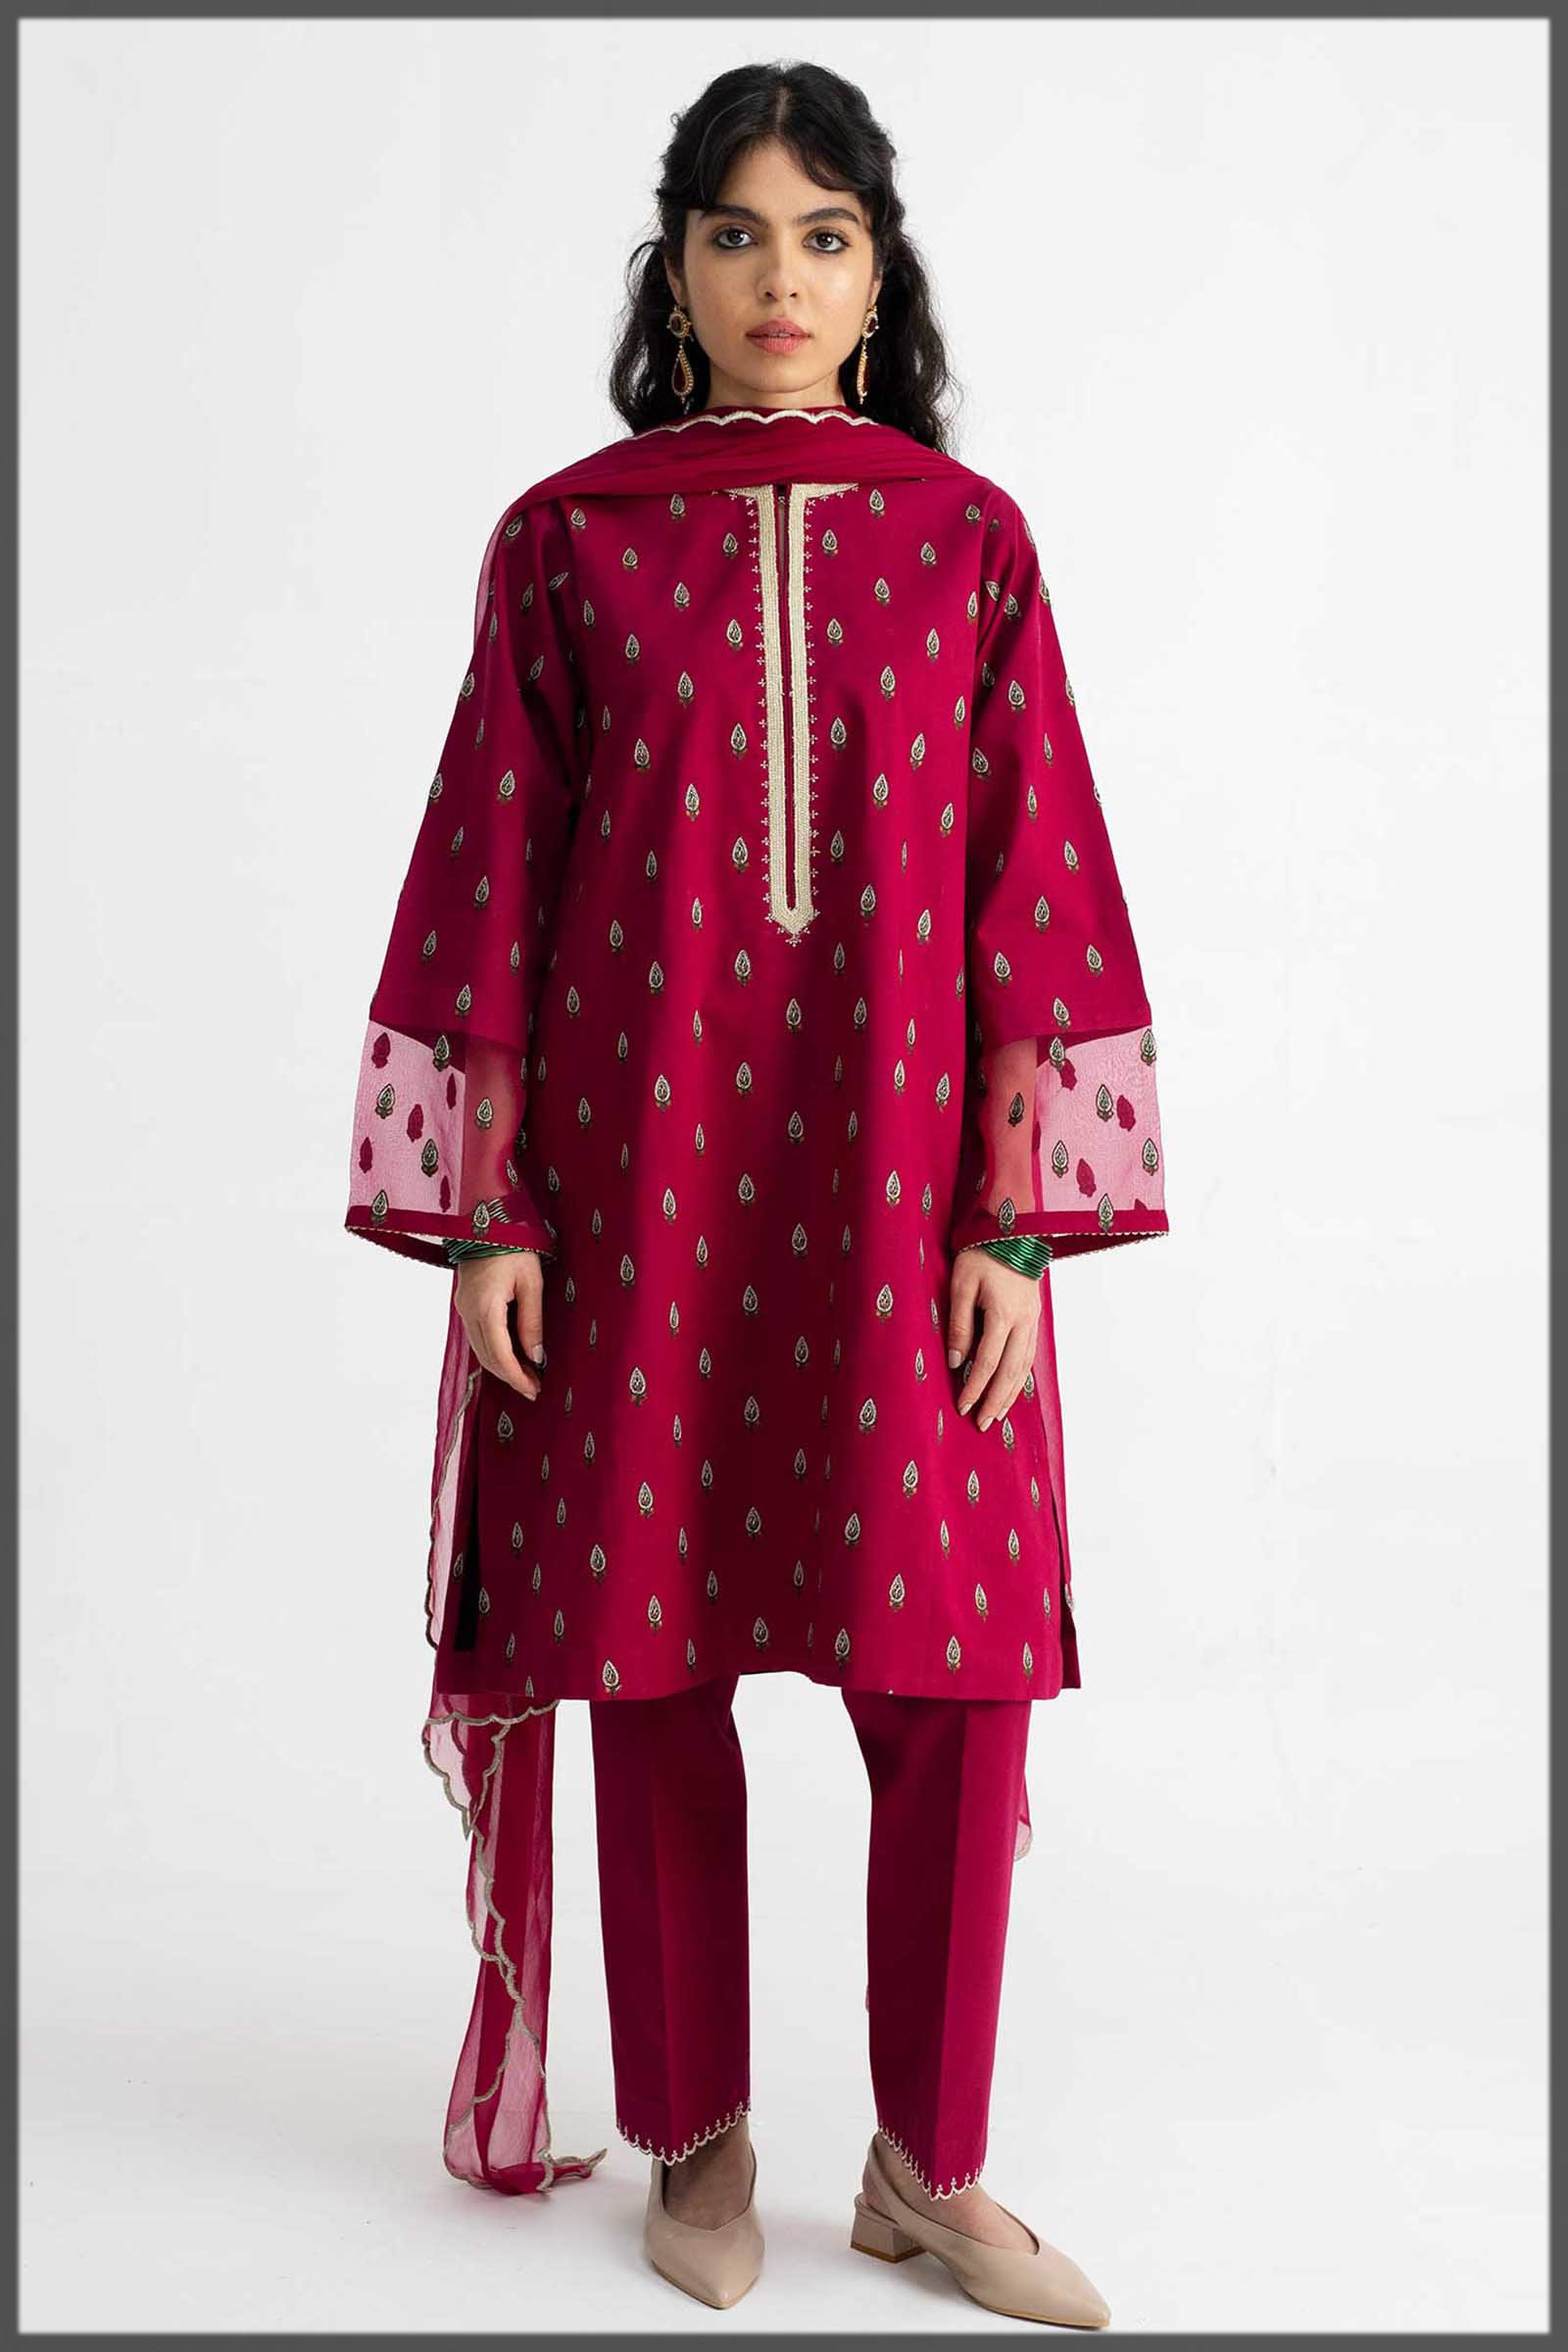 deep red outfit for teens